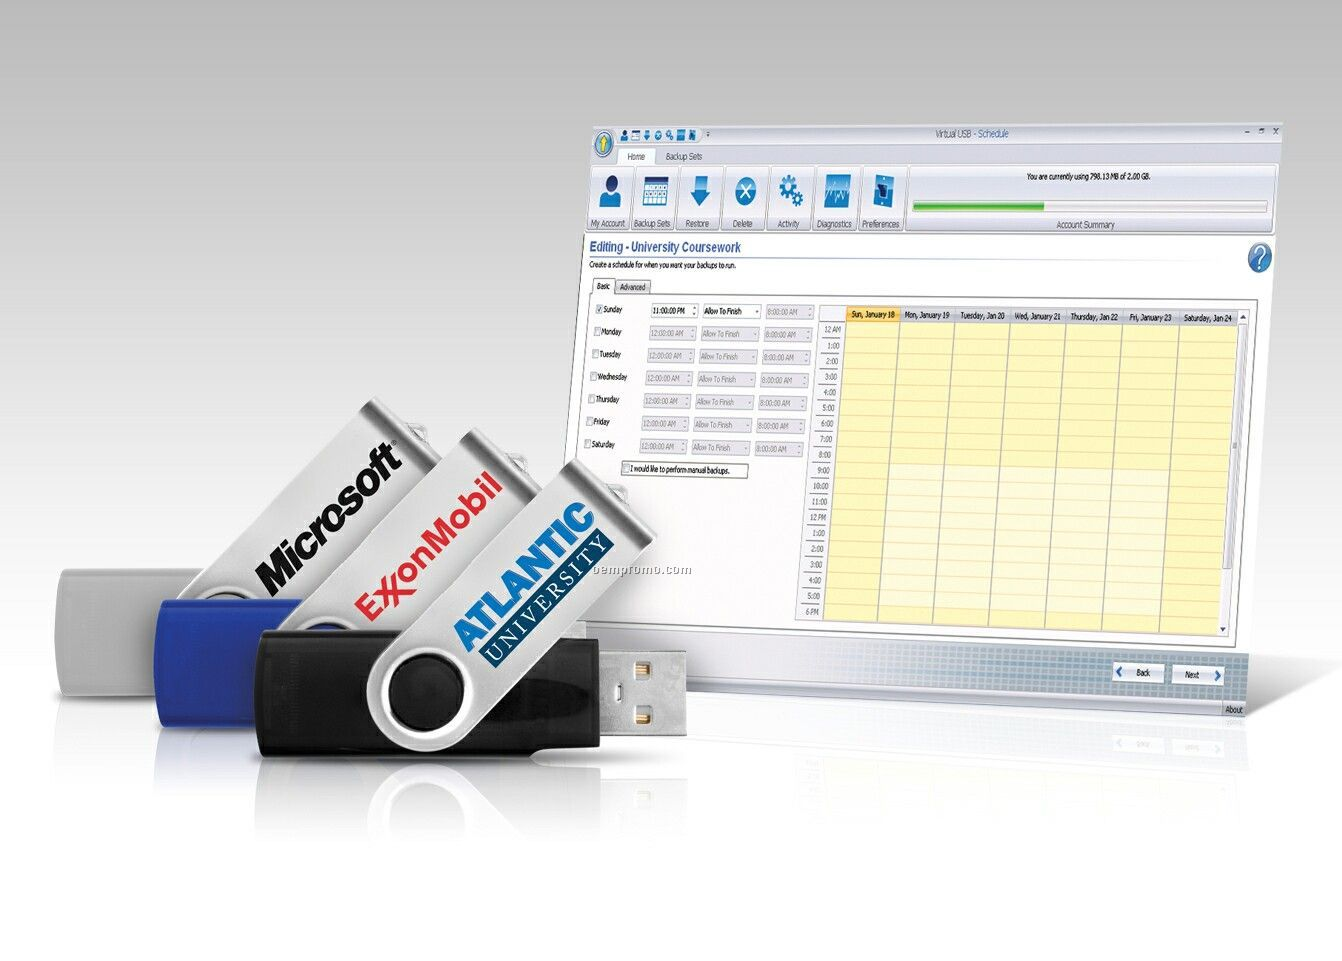 Doubledata USB Drive And Online Data Storage